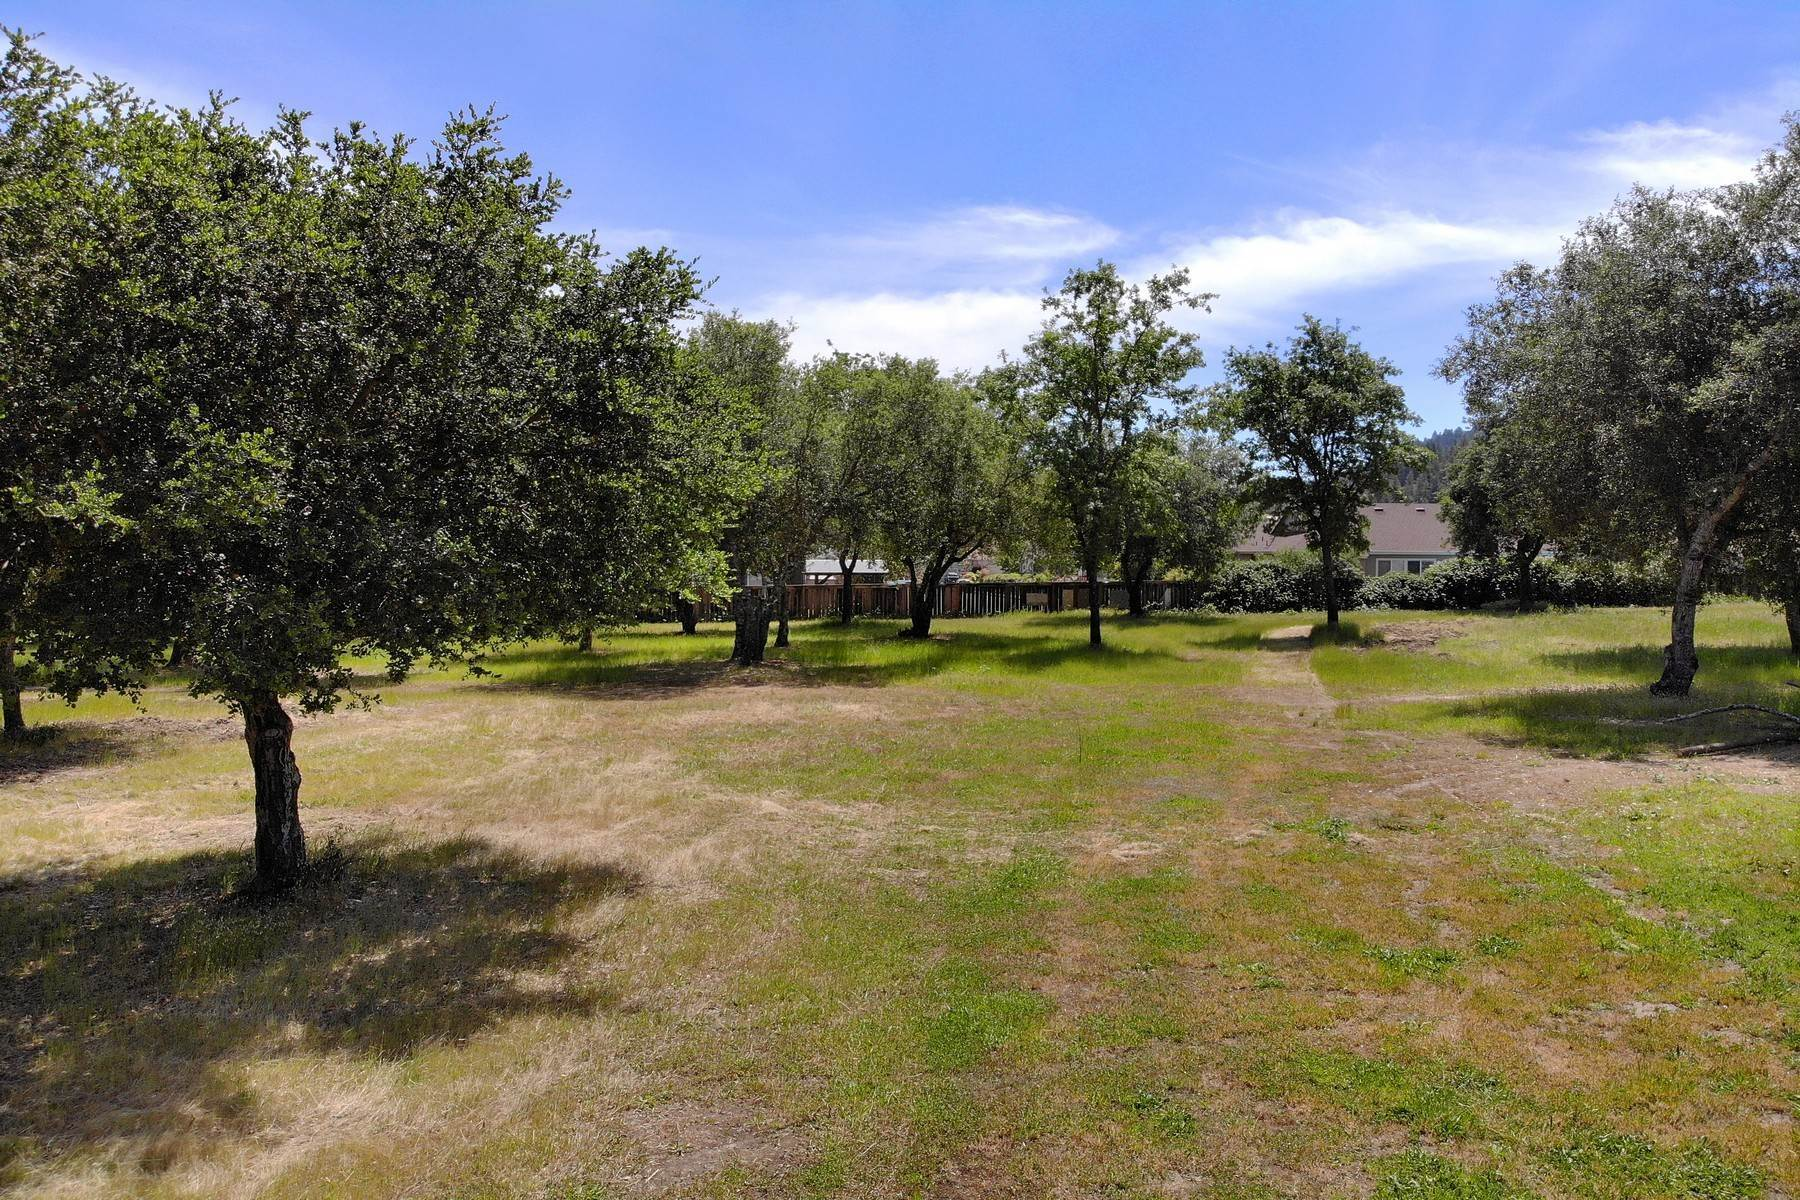 Terreno por un Venta en Development Opportunity 593 W. 2nd Street Cloverdale, California 95425 Estados Unidos